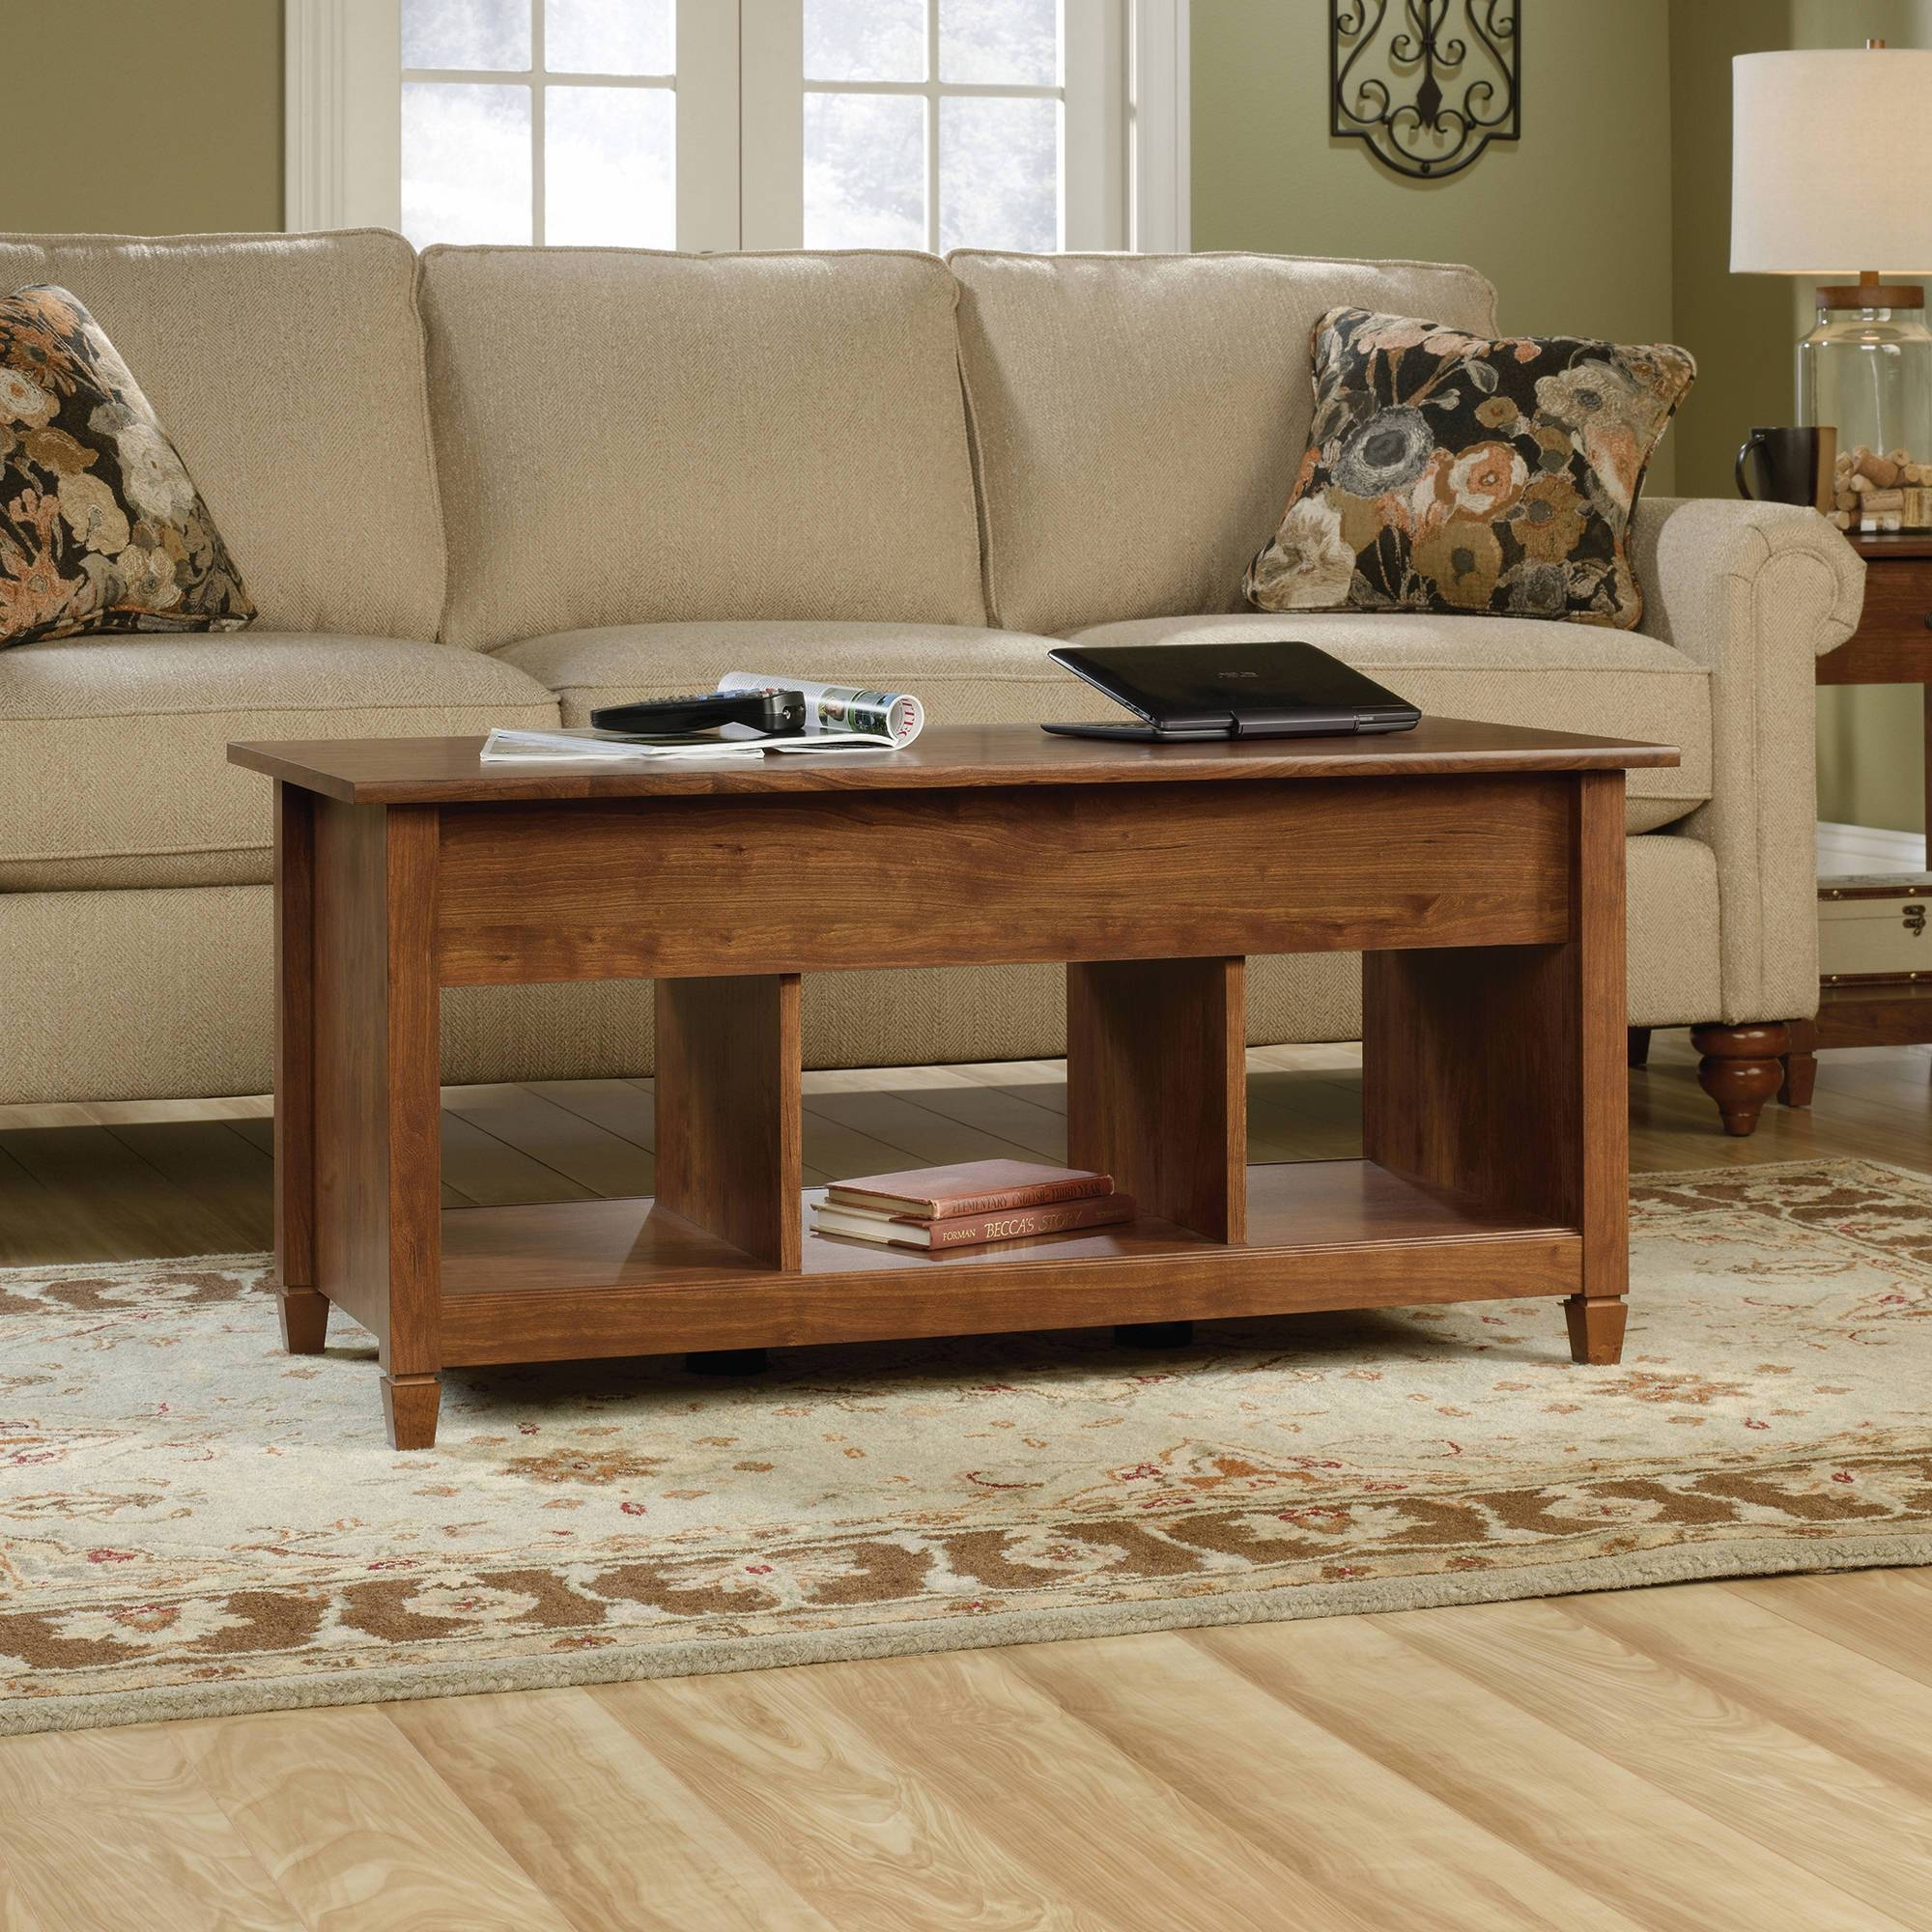 Mainstays Lift-Top Coffee Table, Multiple Colors - Walmart for Elevating Coffee Tables (Image 22 of 30)